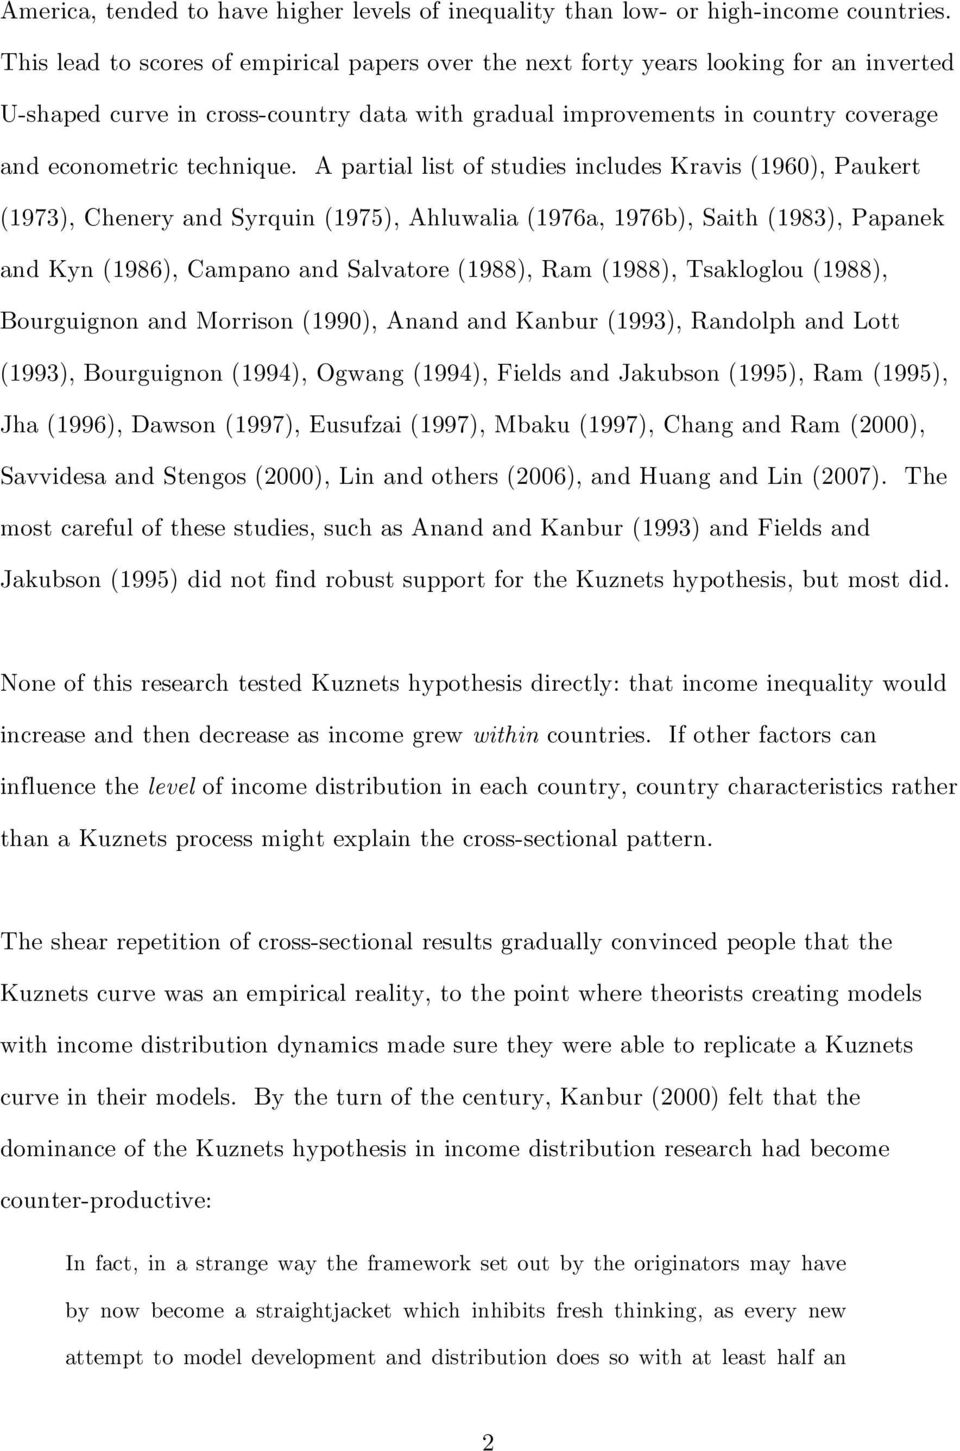 A partial list of studies includes Kravis (1960), Paukert (1973), Chenery and Syrquin (1975), Ahluwalia (1976a, 1976b), Saith (1983), Papanek and Kyn (1986), Campano and Salvatore (1988), Ram (1988),